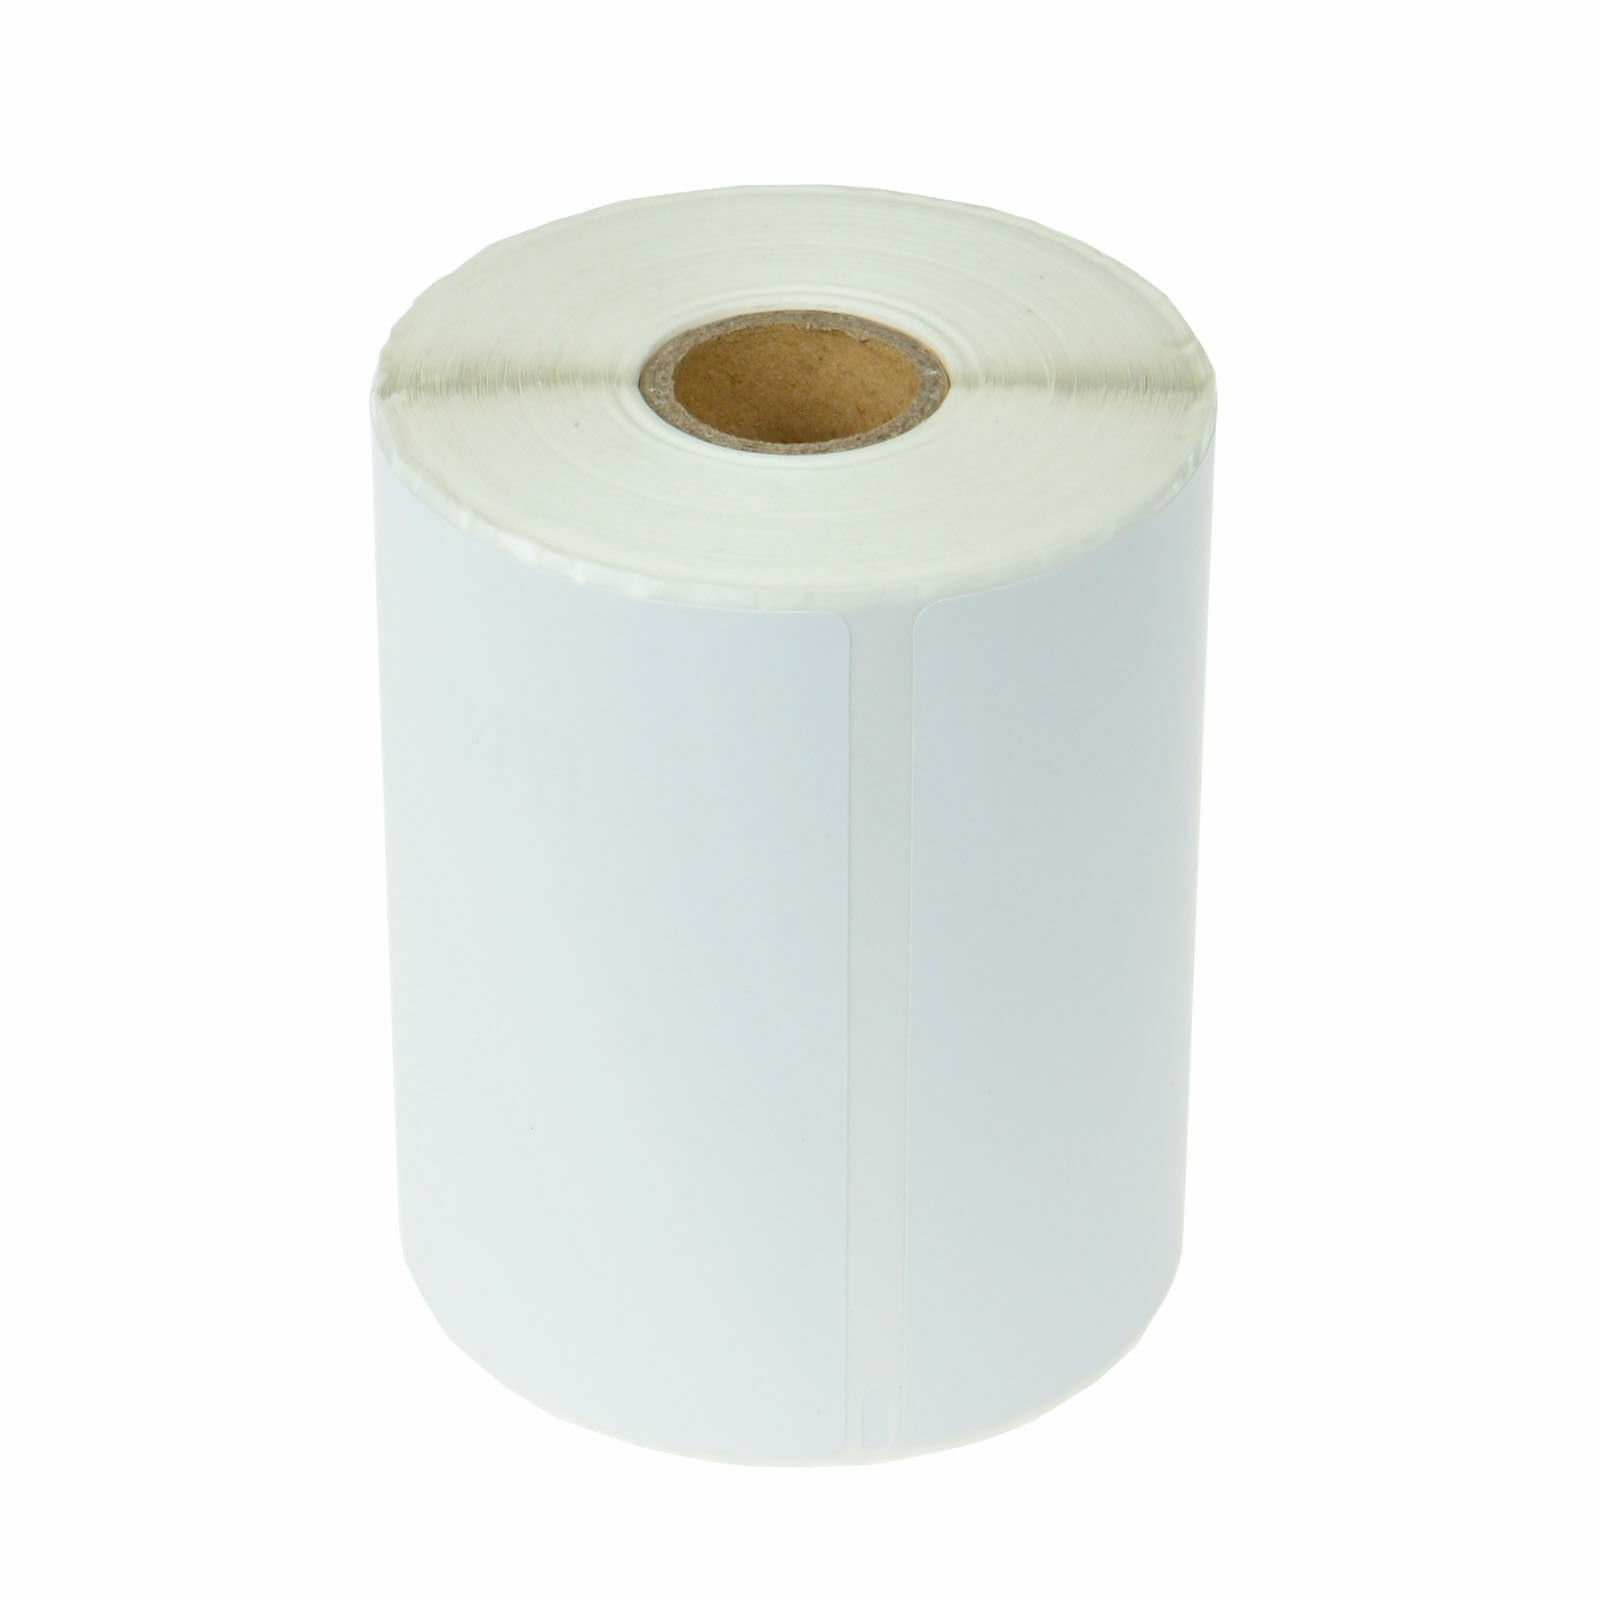 8 Rolls Label 4x6 Zebra 2844 Eltron ZP450 Direct Thermal Shipping 2000 Labels